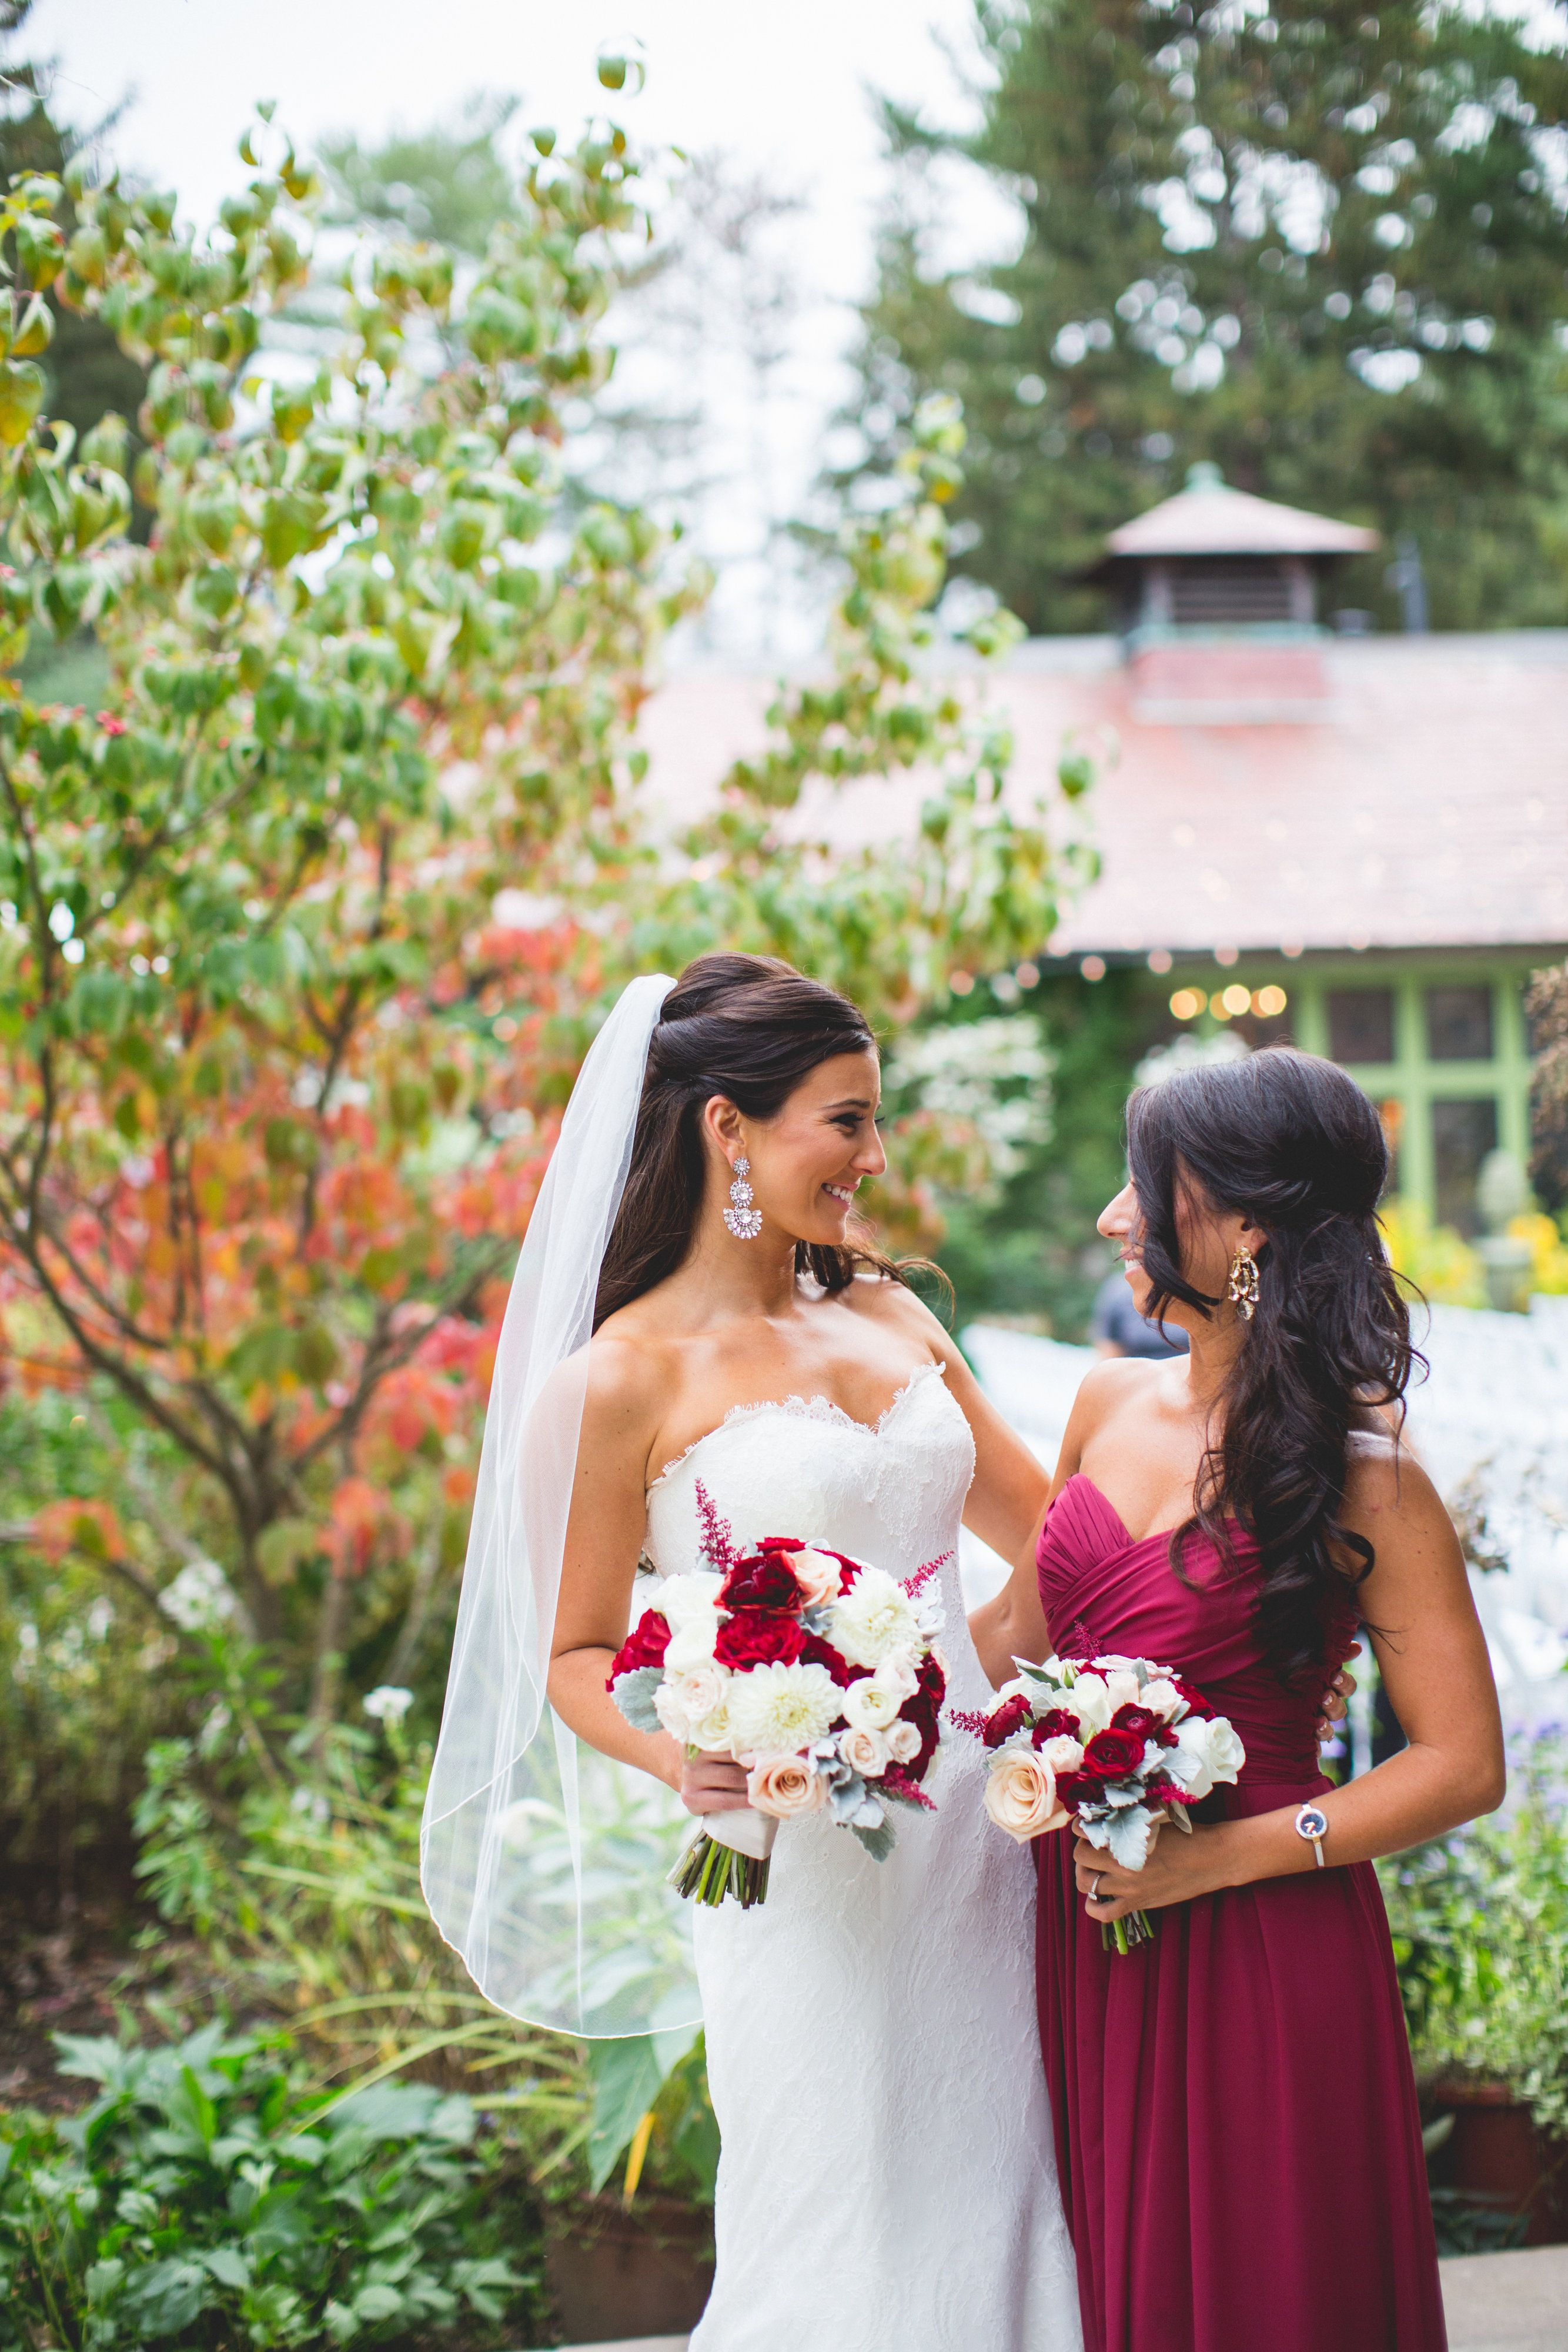 Marsala Burgundy Bridesmaid Dresses With Fl Bouquet At Willowdale Estate In Topsfield Ma Www